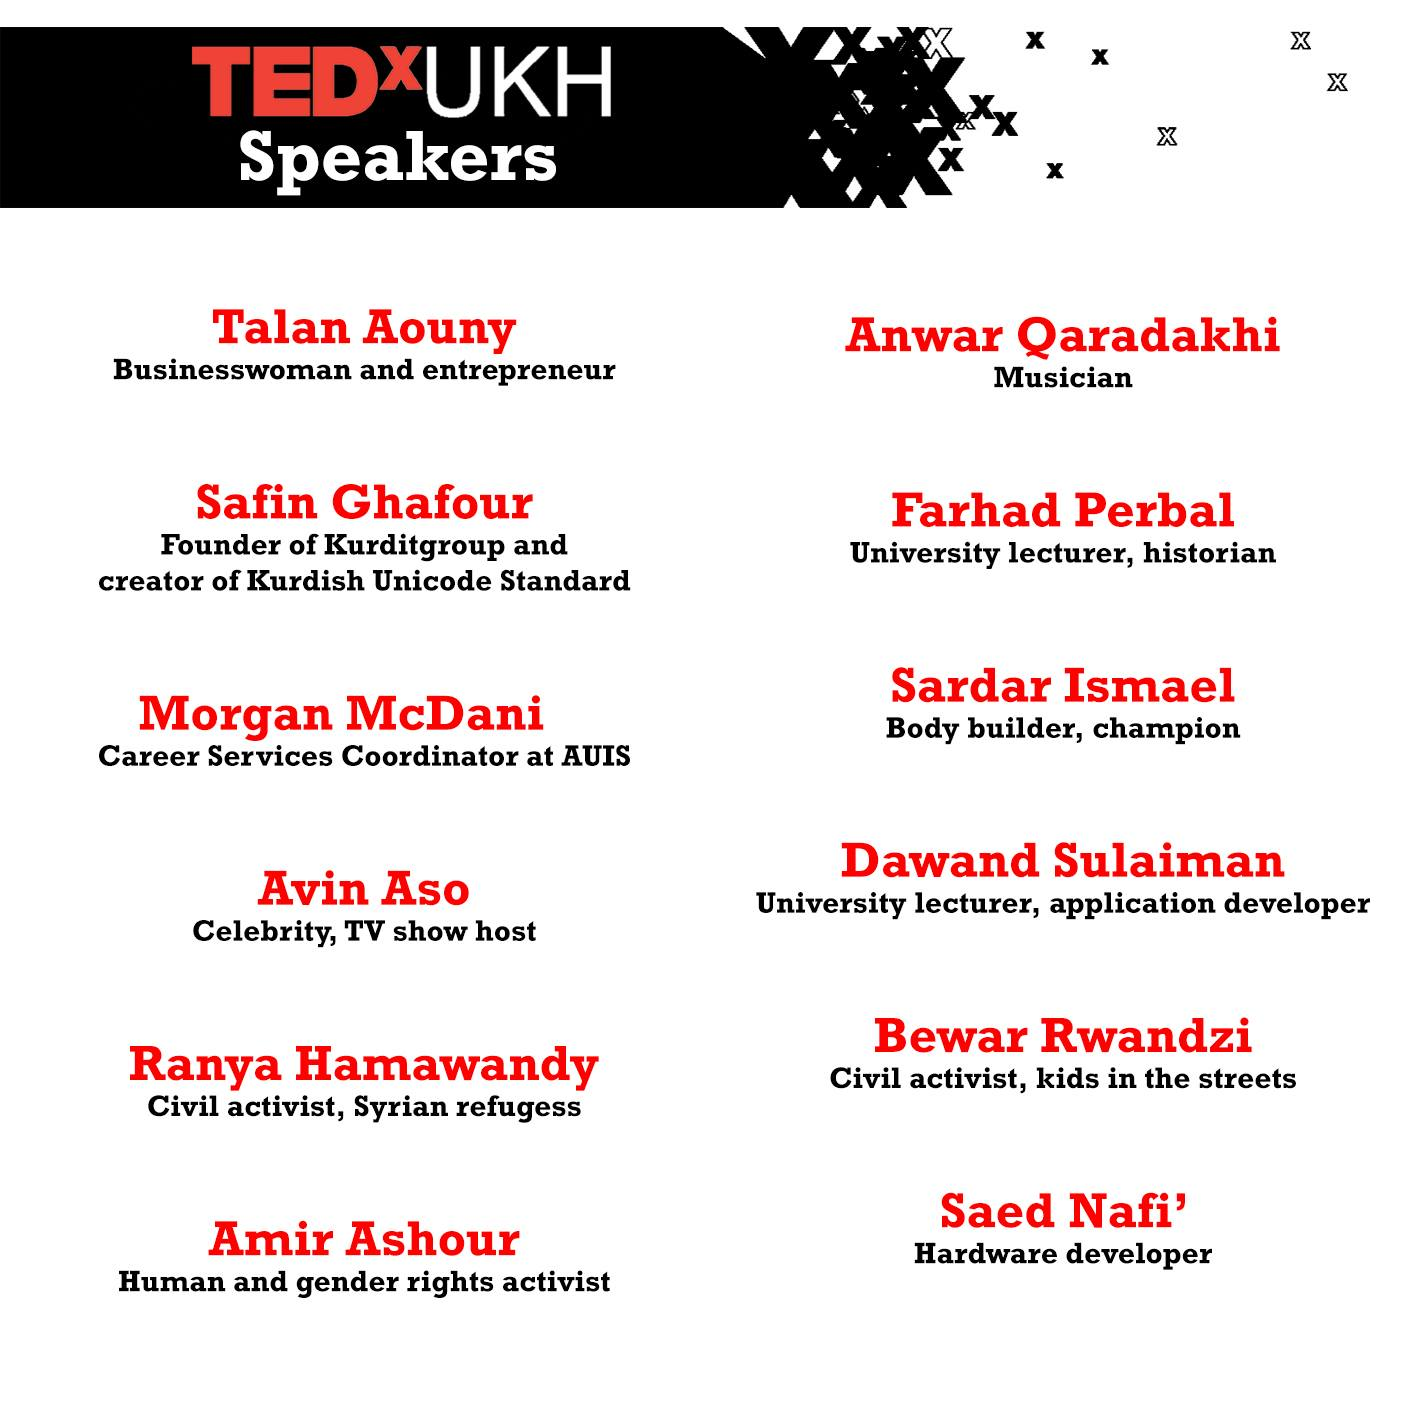 TEDxUKH Speakers